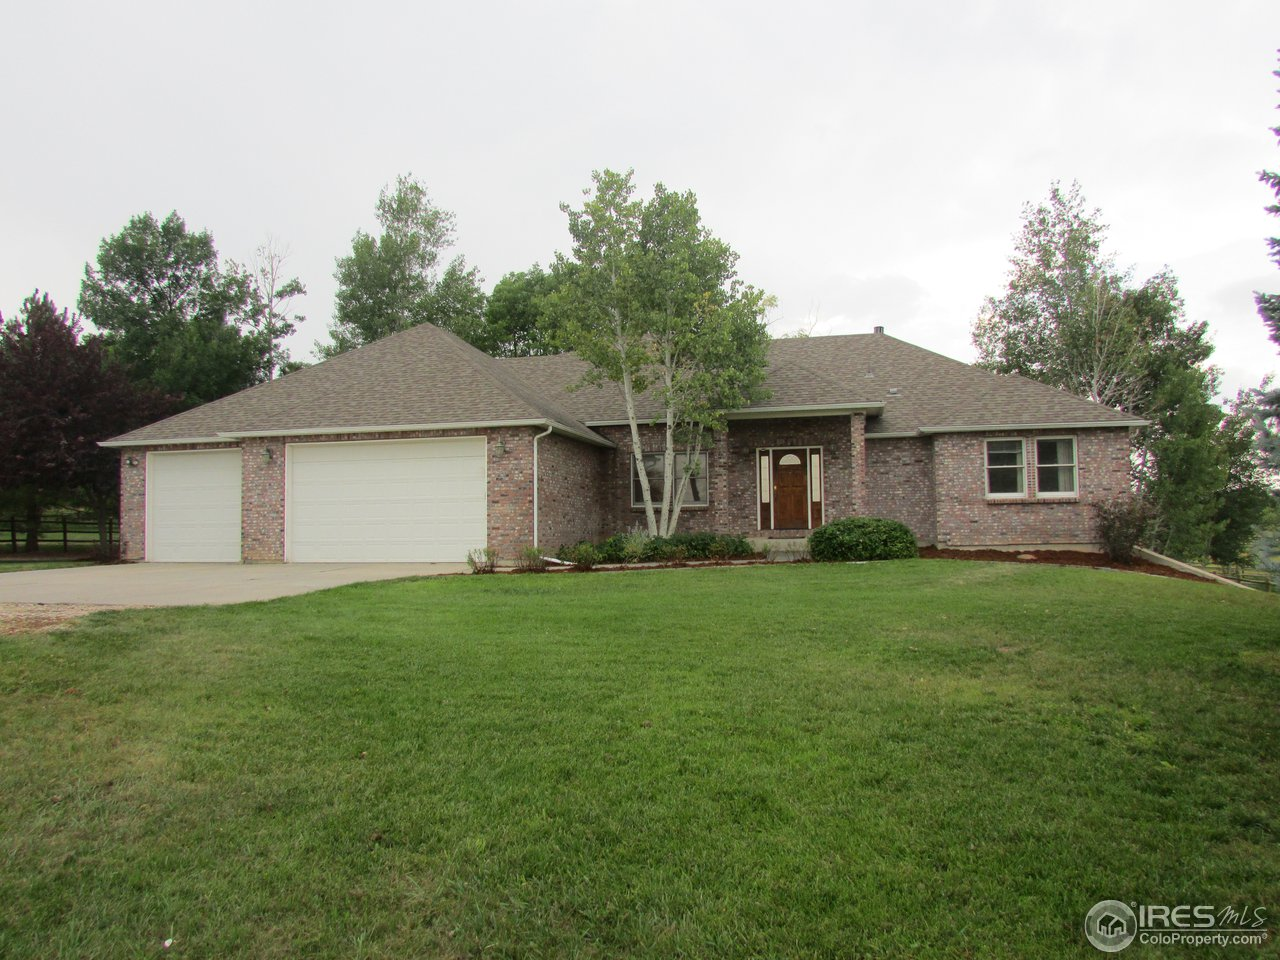 2900 Abbotsford St, Fort Collins CO 80524